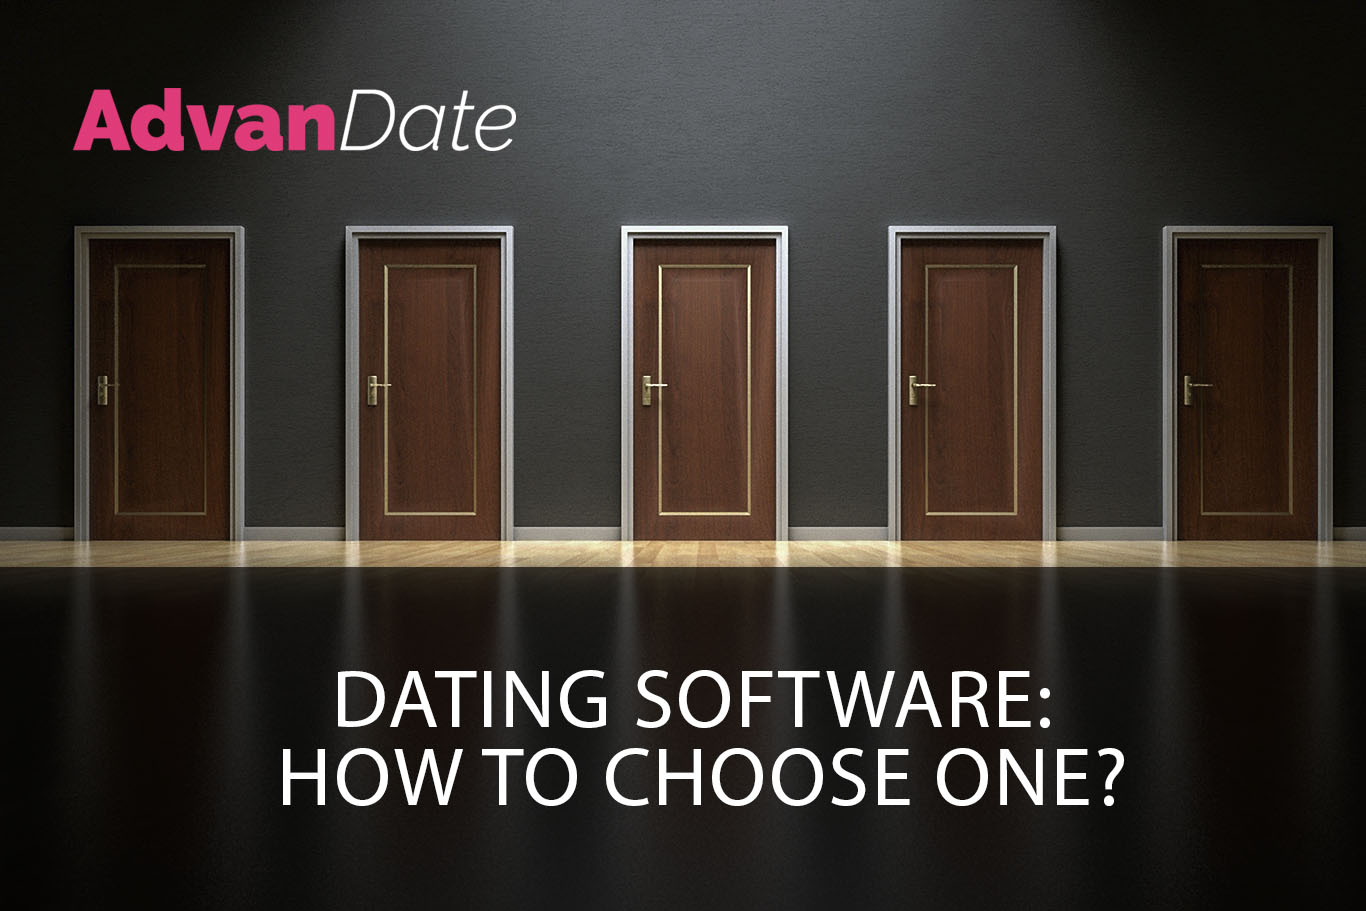 Dating software: how to choose one?